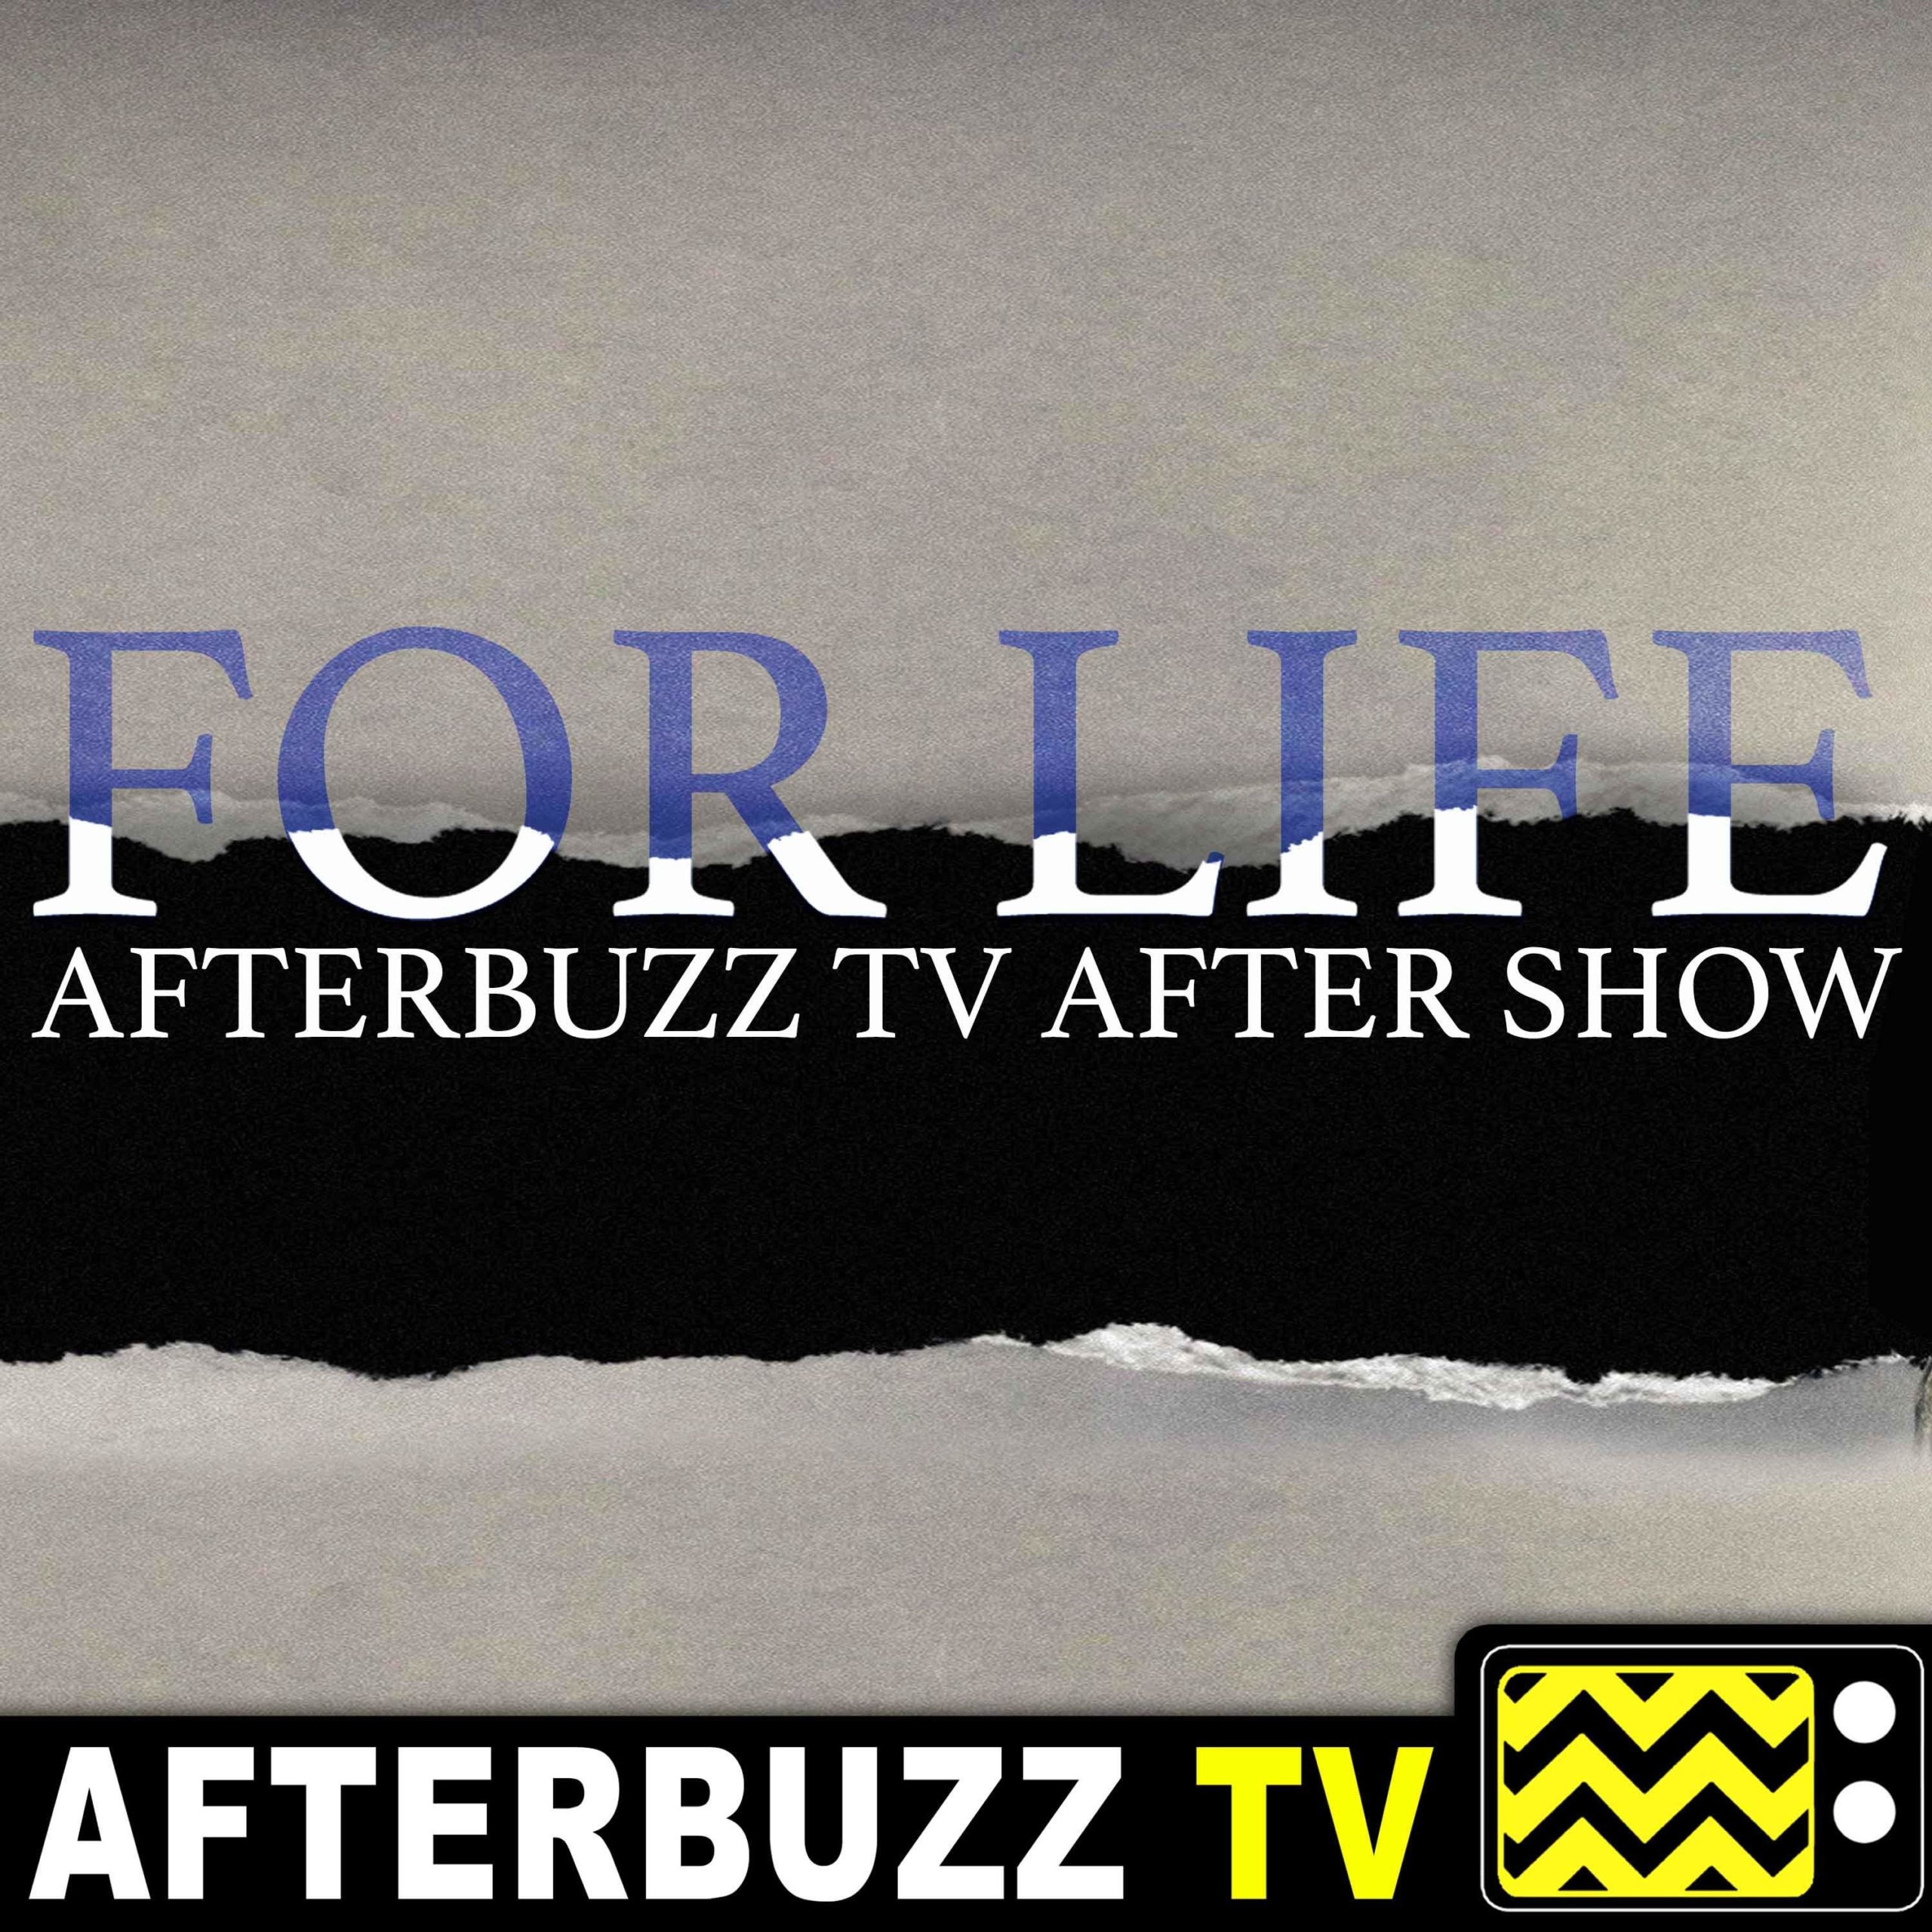 For Life S1 E13 Recap & After Show: Will Aaron choose clemency or exoneration?